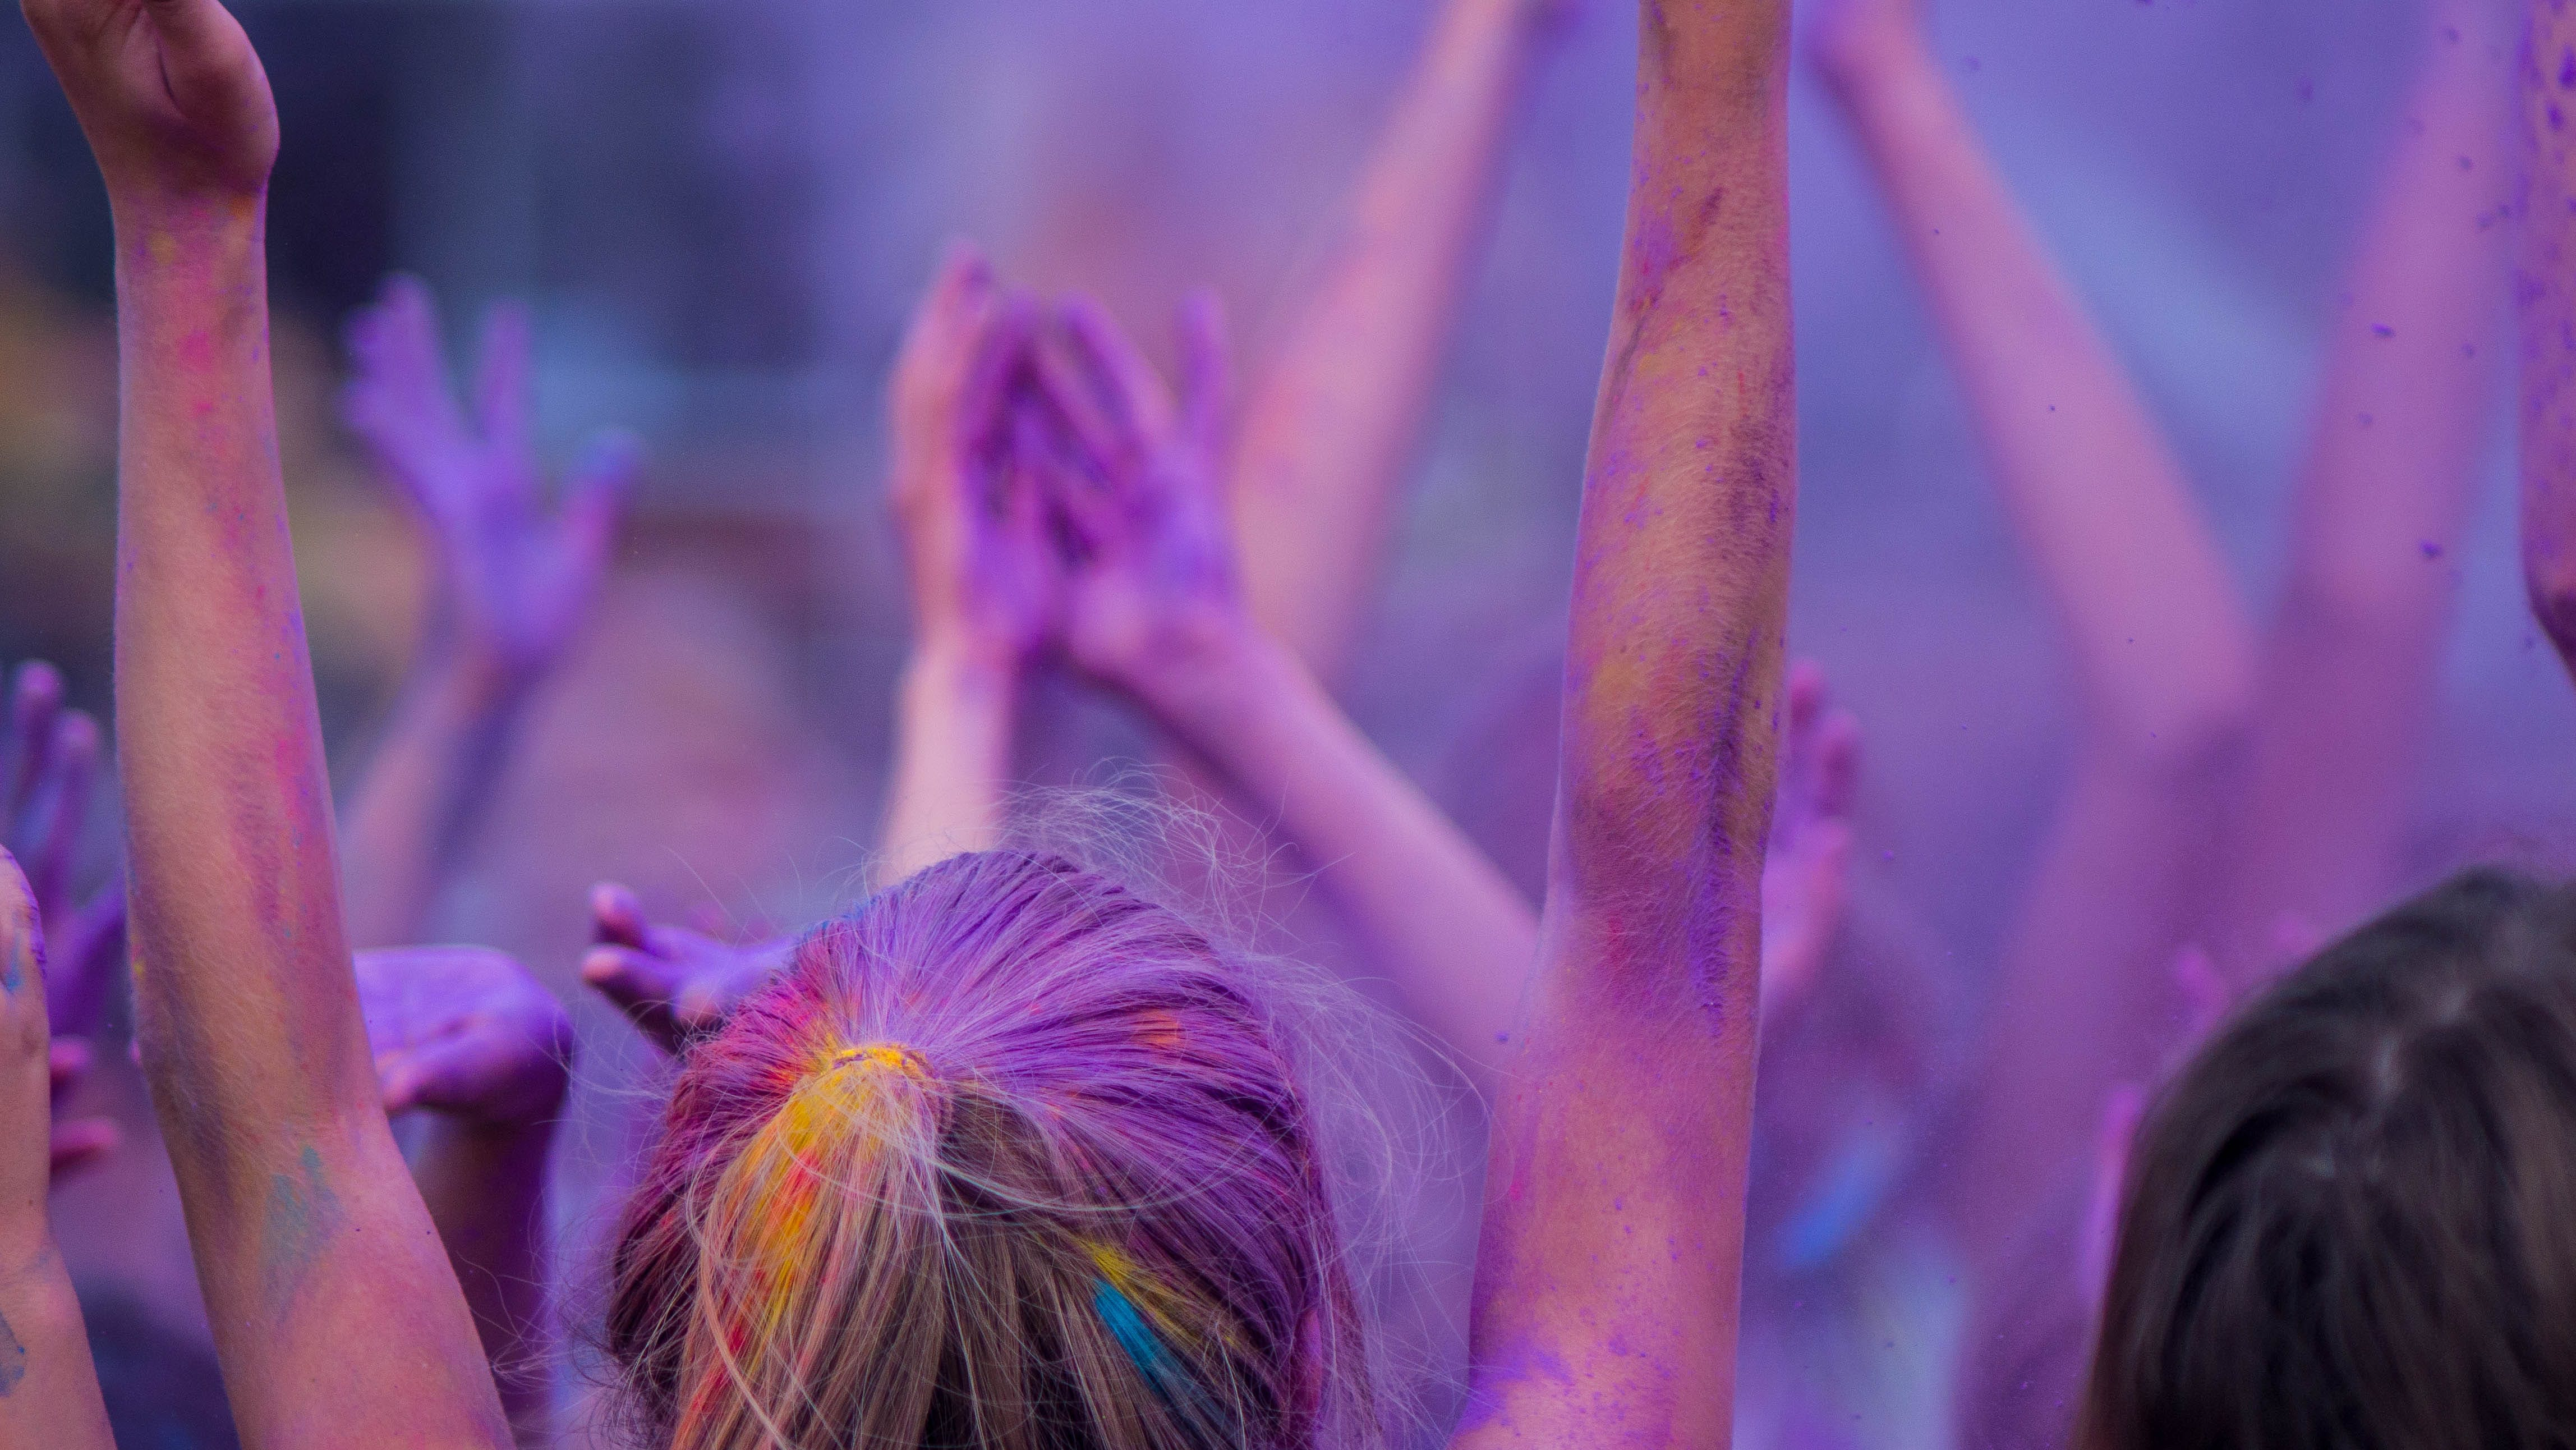 Free stock photo of crowd, purple